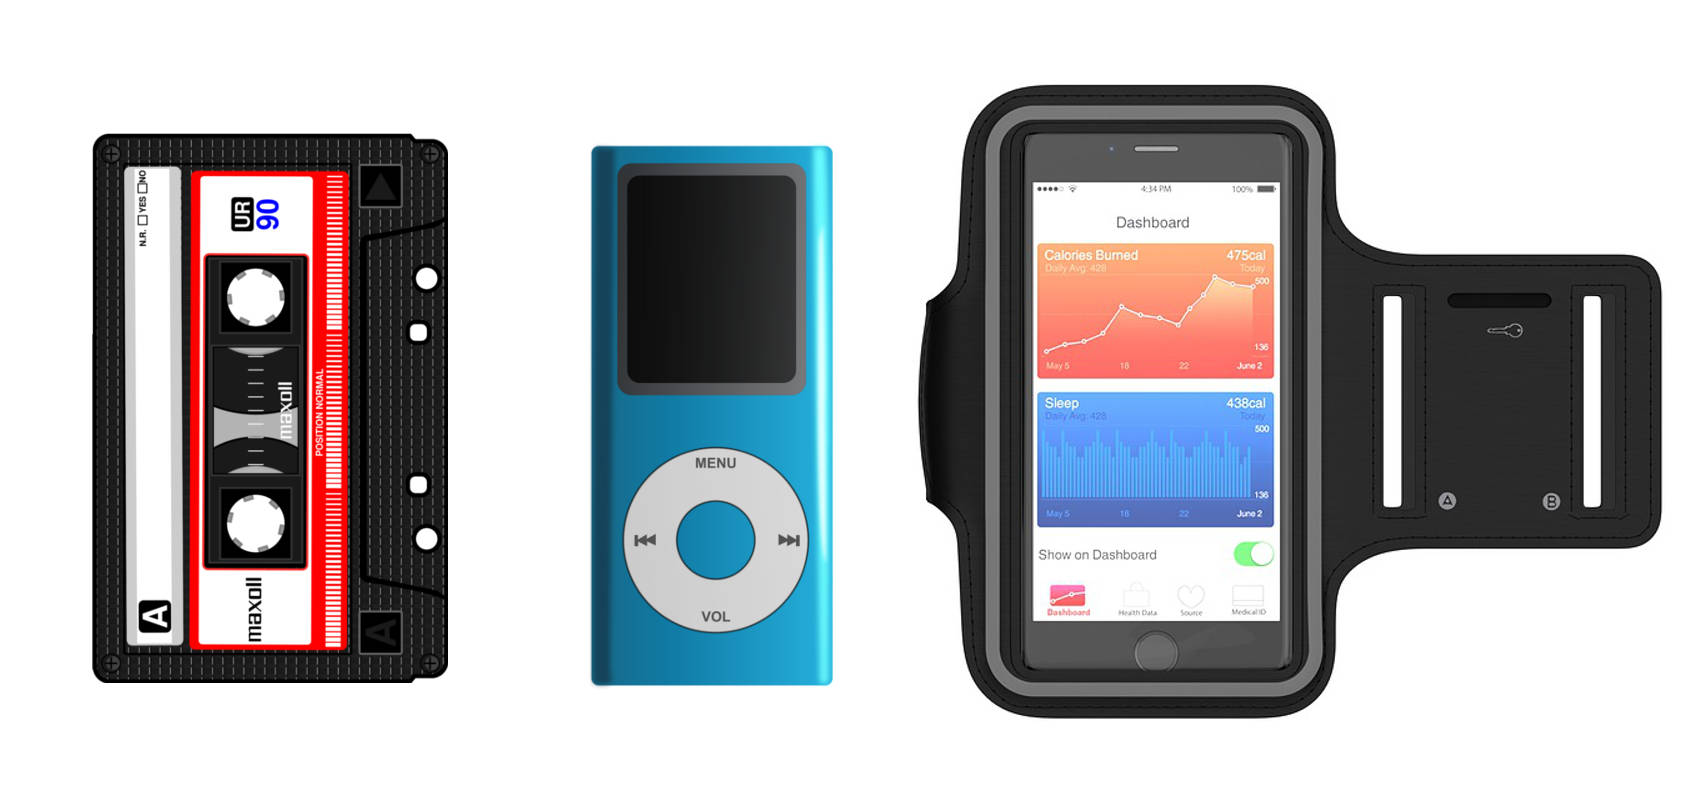 Portable Devices for running